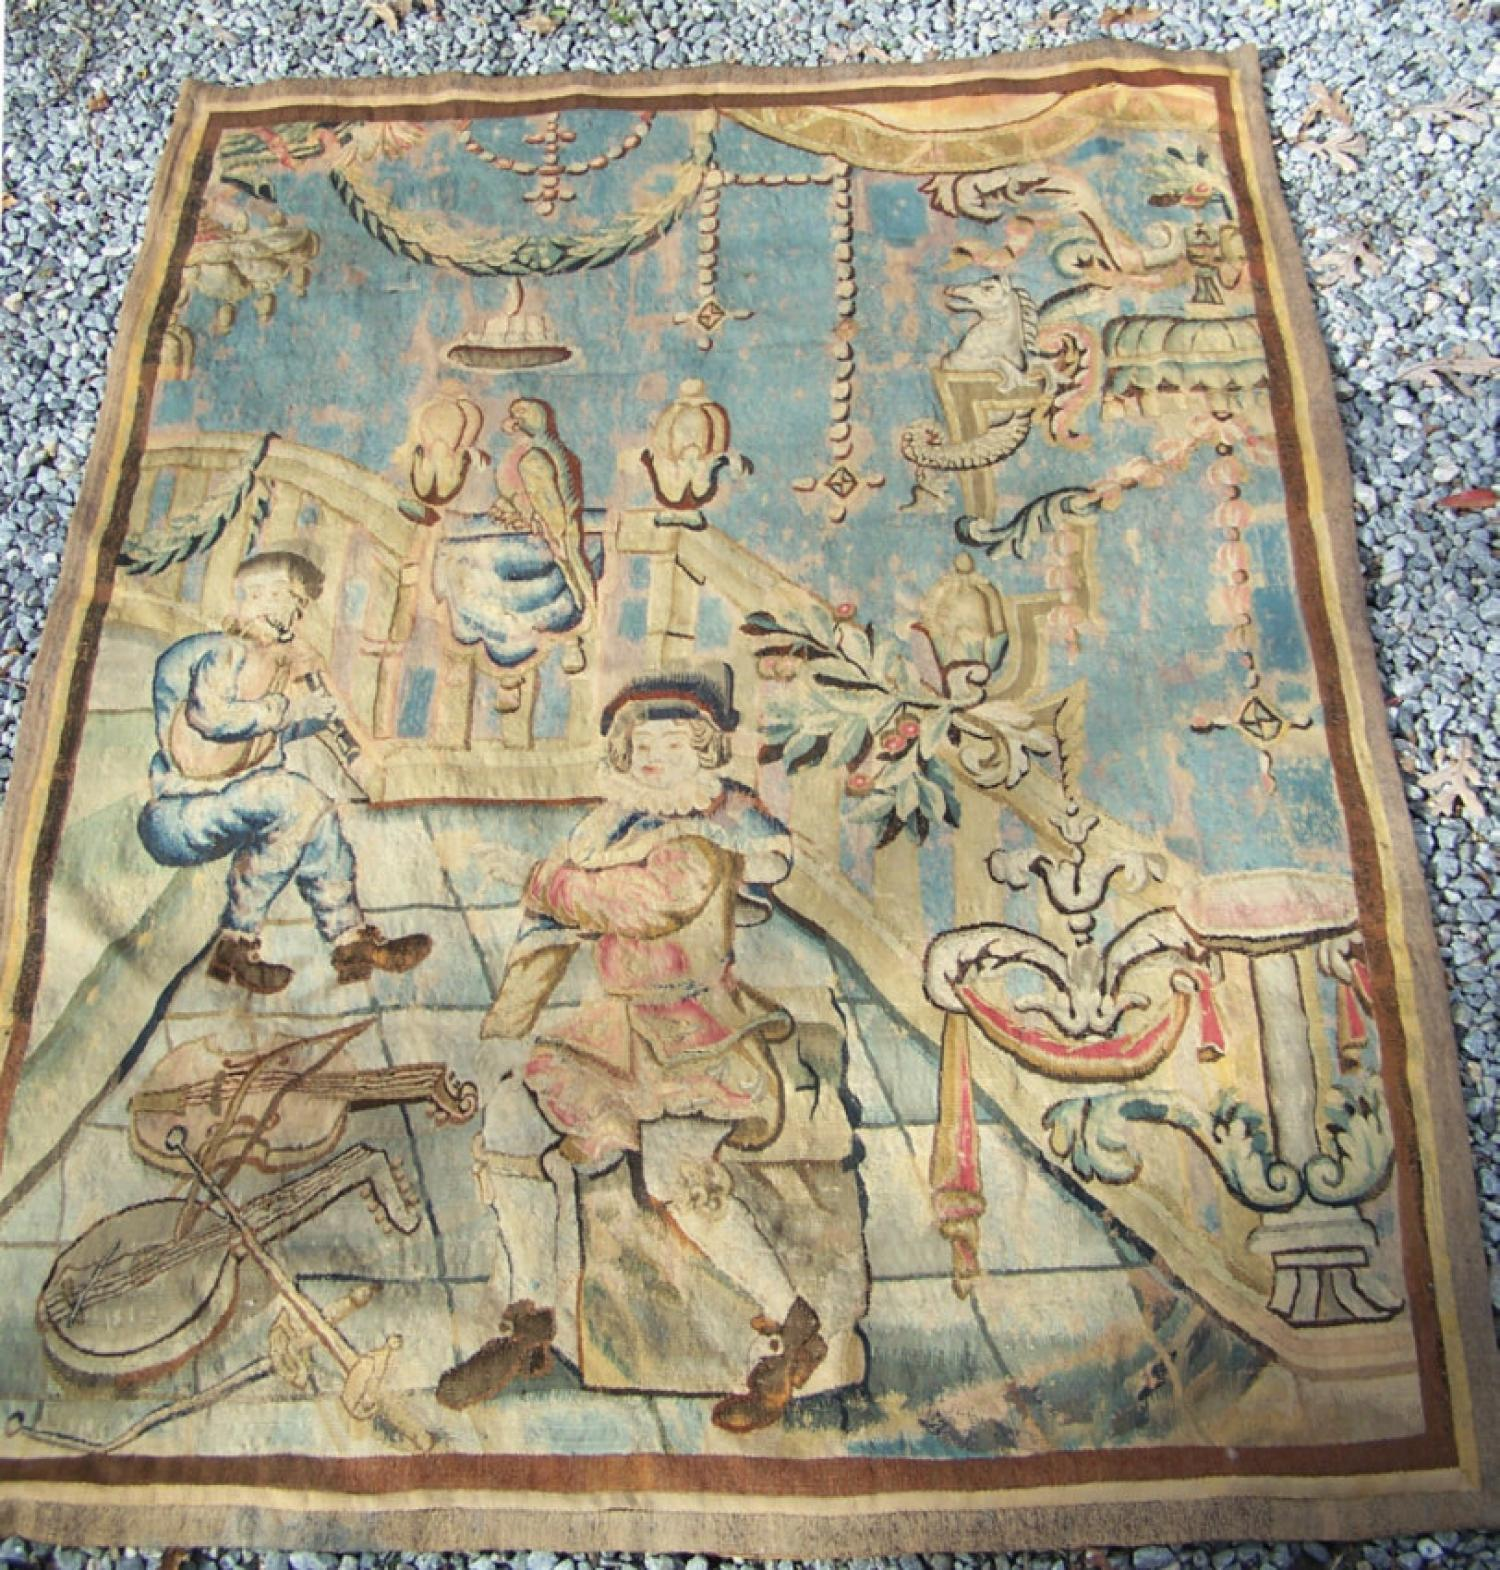 16th century Franco Flemish tapestry